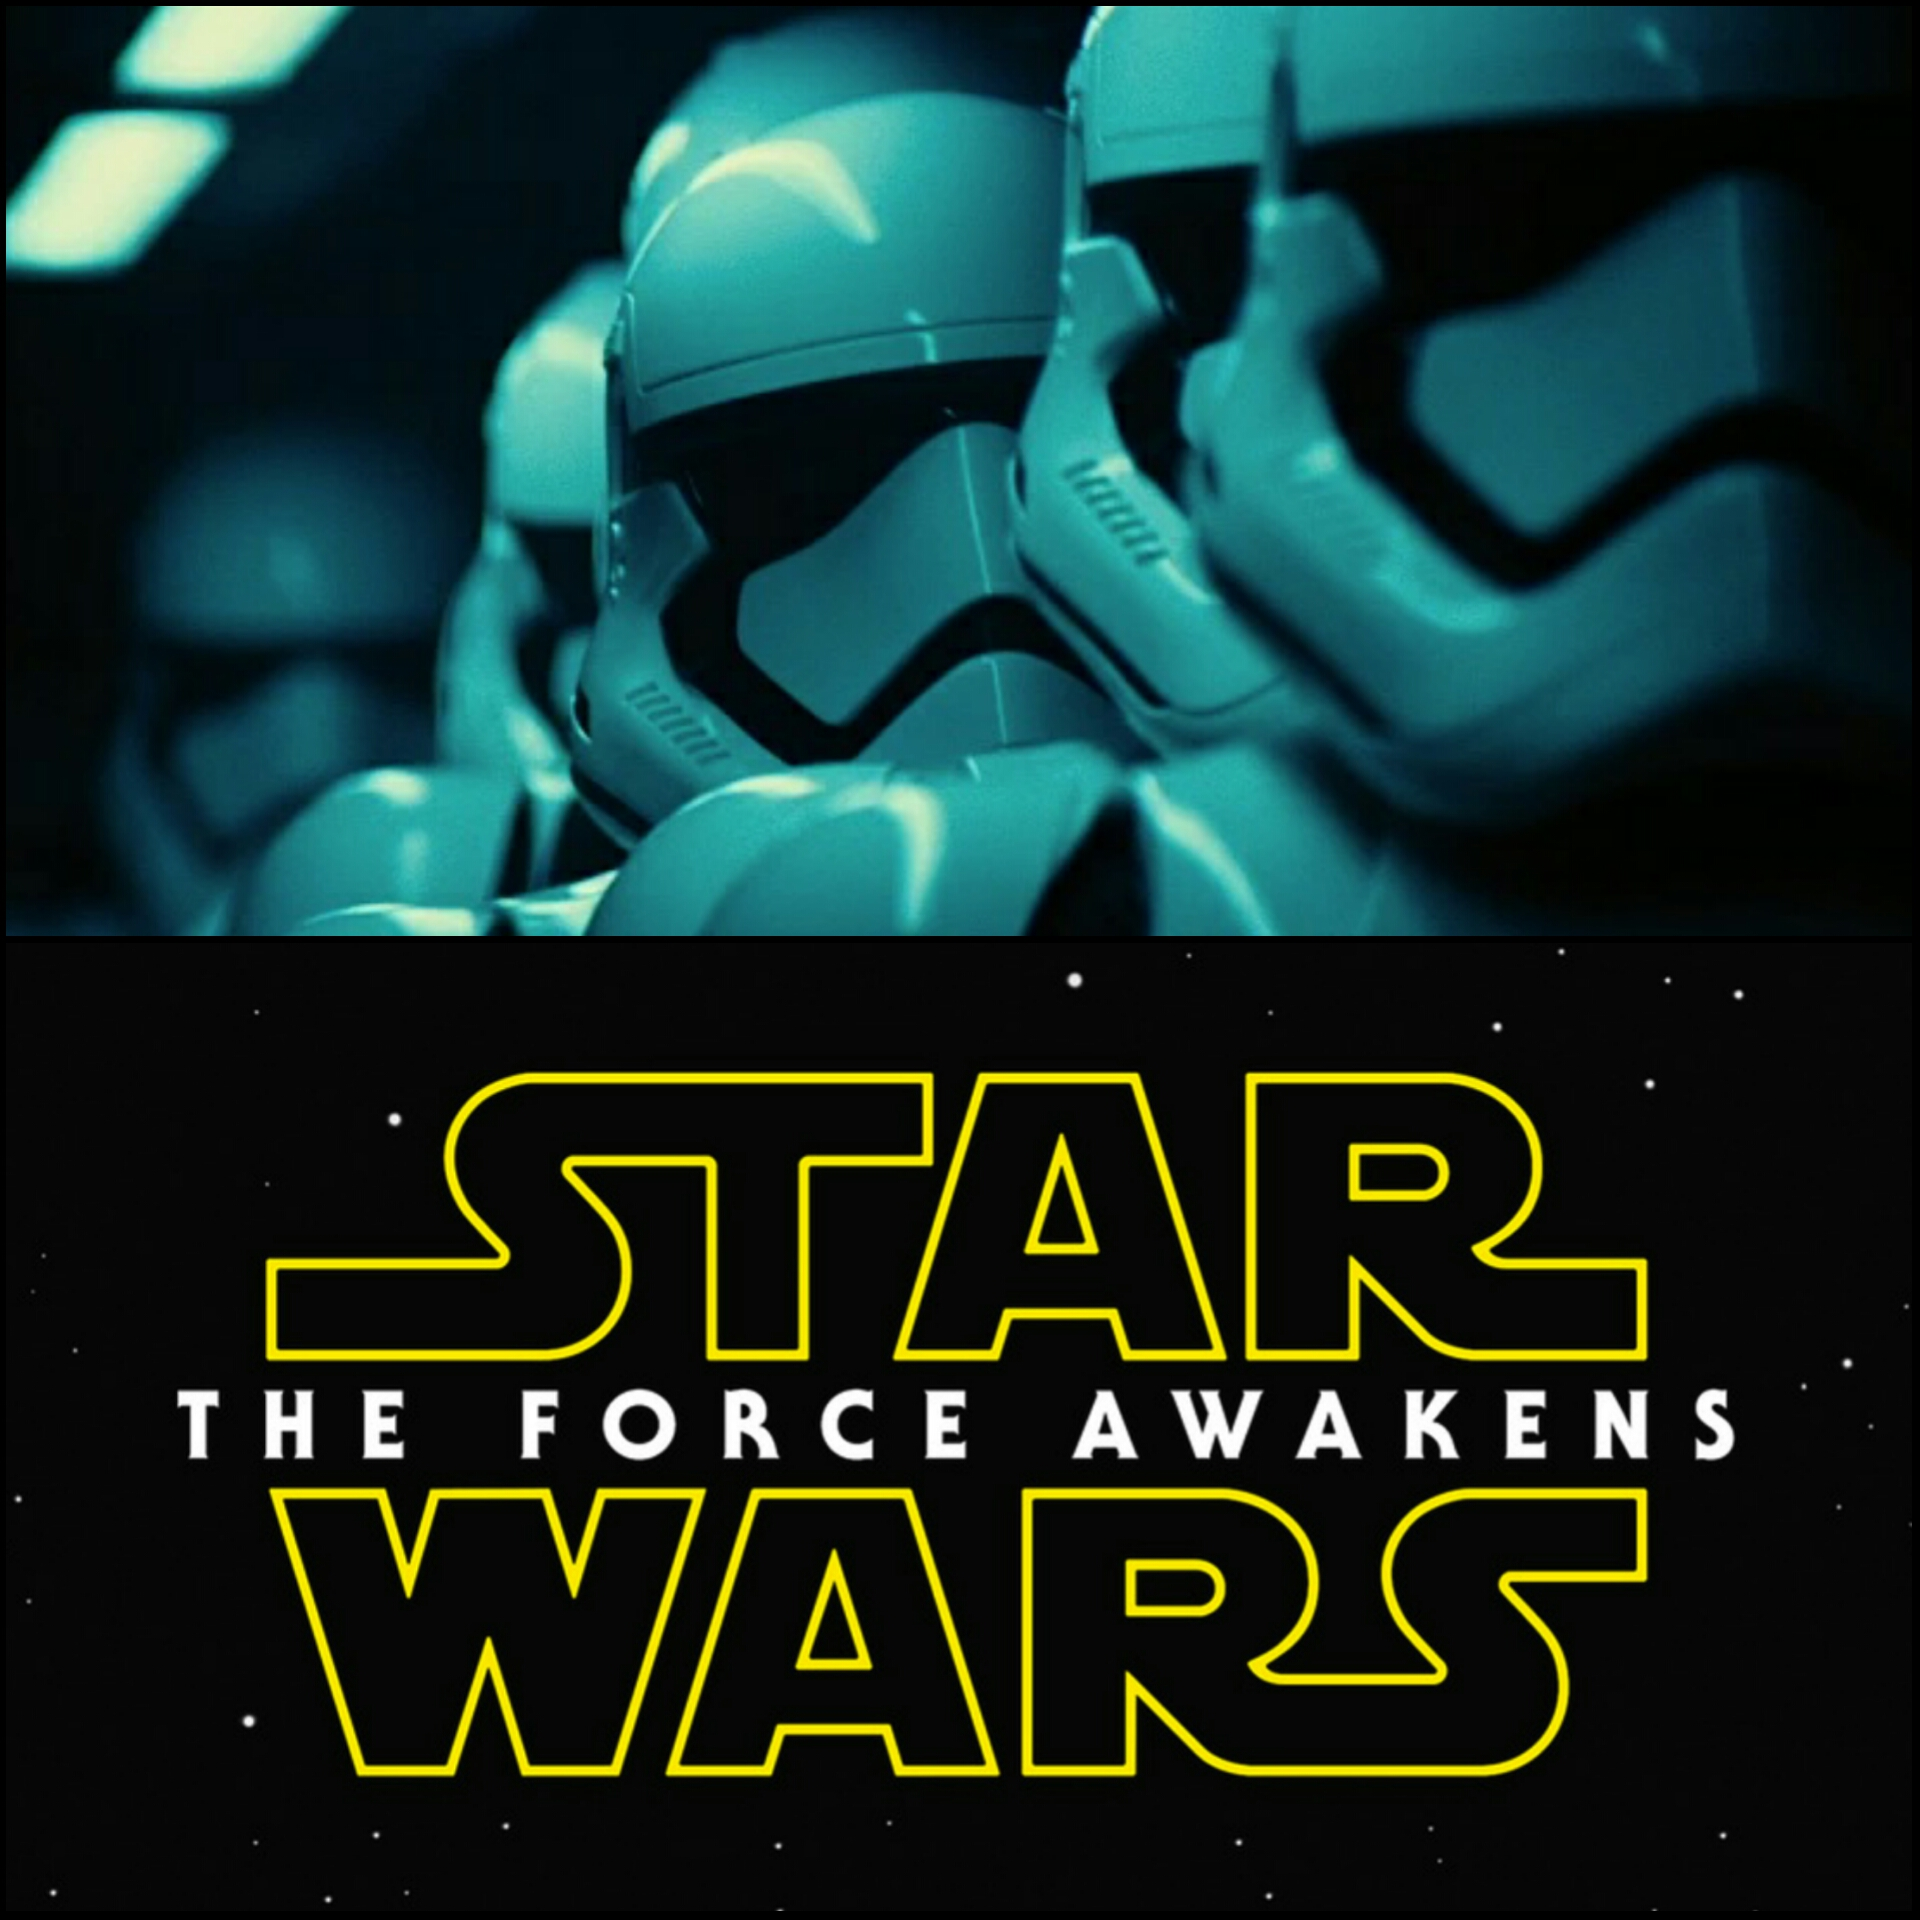 Star Wars The Force Awakens - Stormtroopers - Phoenix James Official